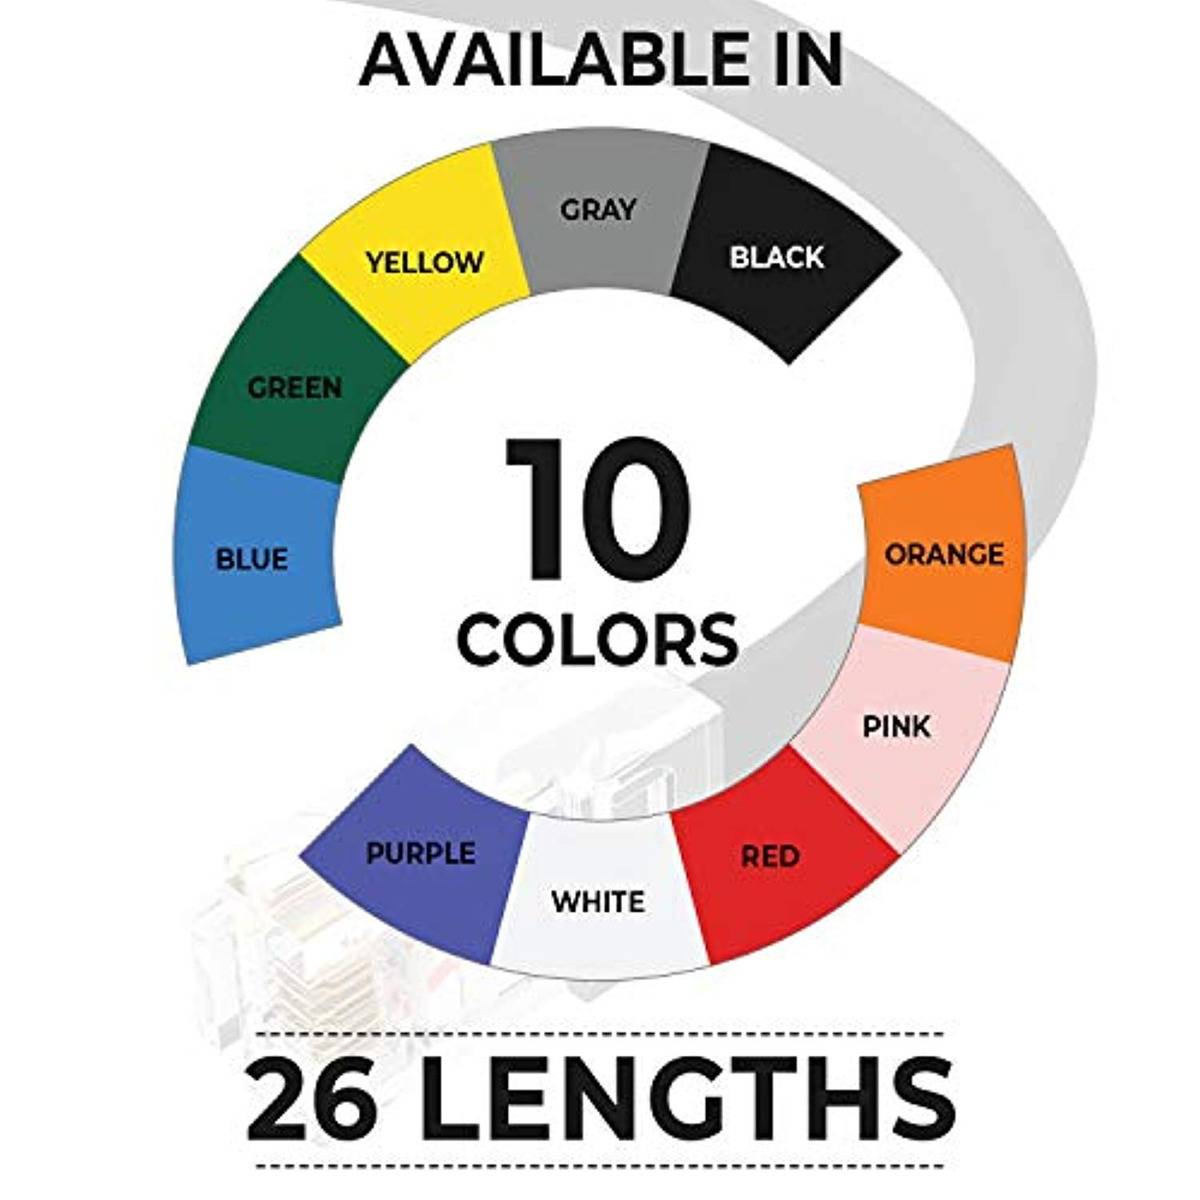 Available in 28 Lengths and 10 Colors Cat5e Ethernet Cable RJ45 10Gbps High Speed LAN Internet Patch Cord 5 Feet - White UTP GOWOS 100-Pack Computer Network Cable with Bootless Connector